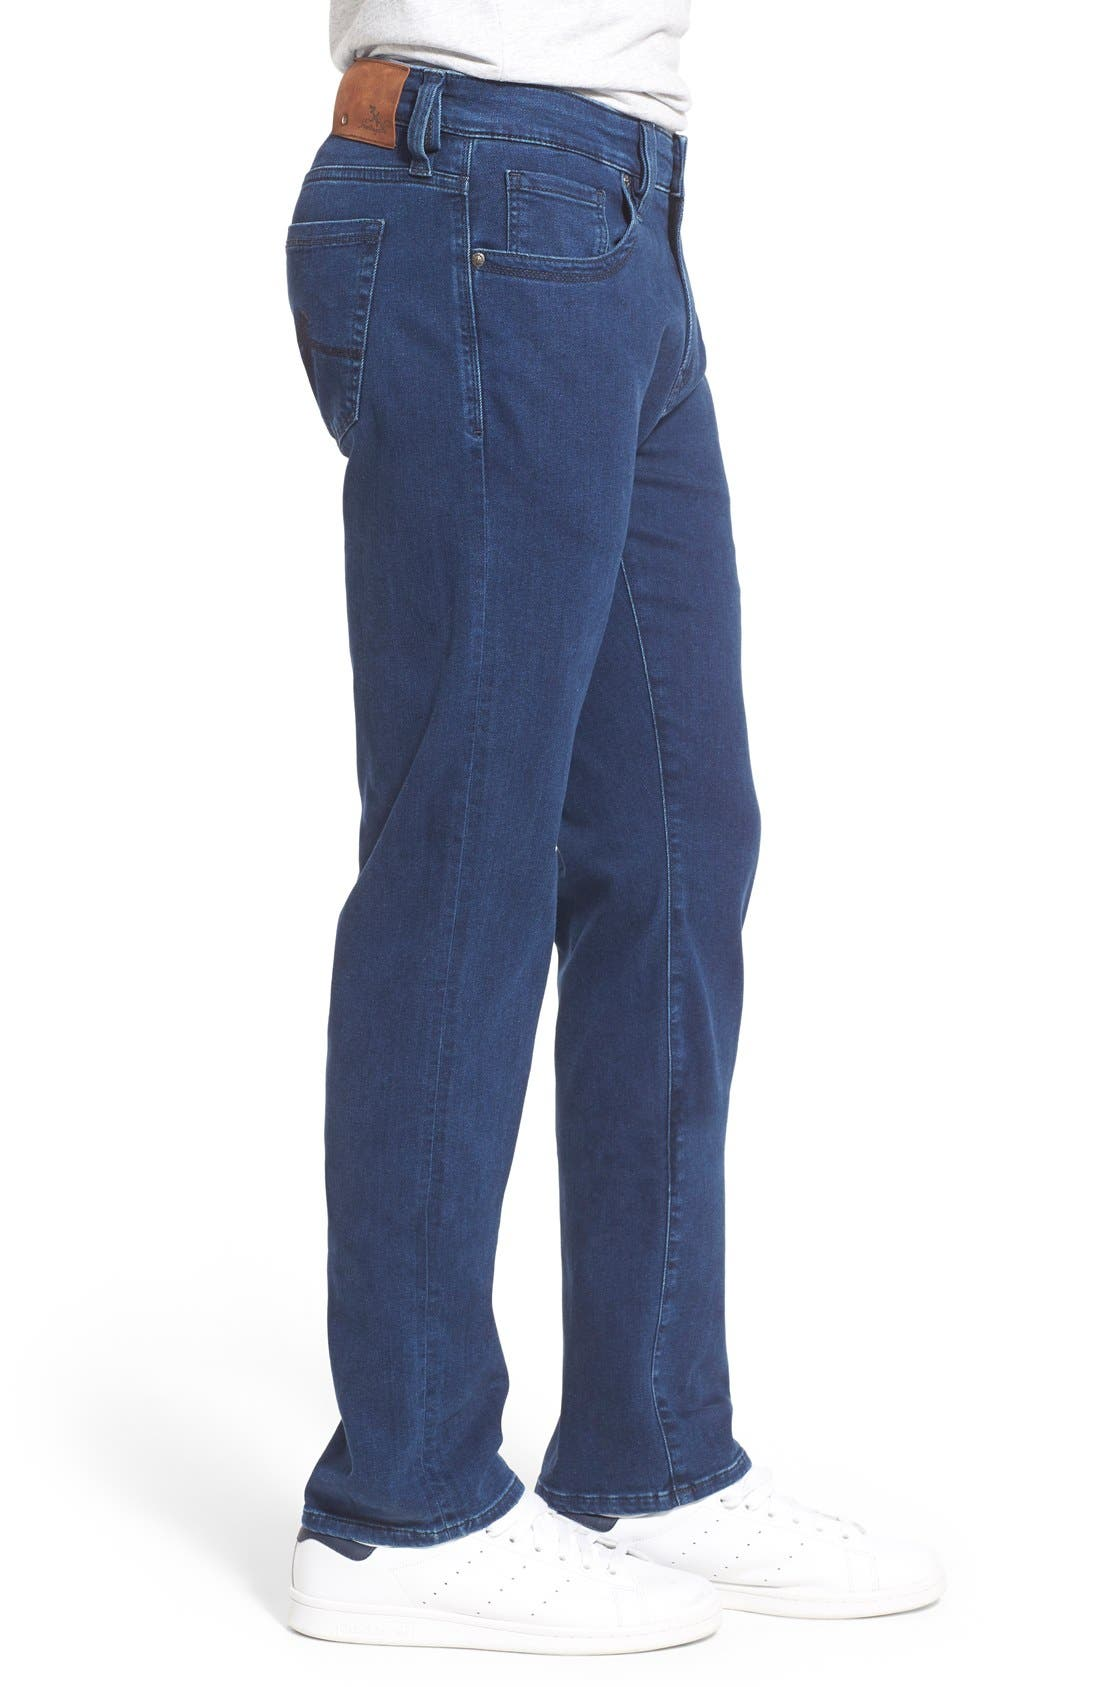 'Courage' Straight Leg Jeans,                             Alternate thumbnail 3, color,                             MIDNIGHT LIGHT DENIM